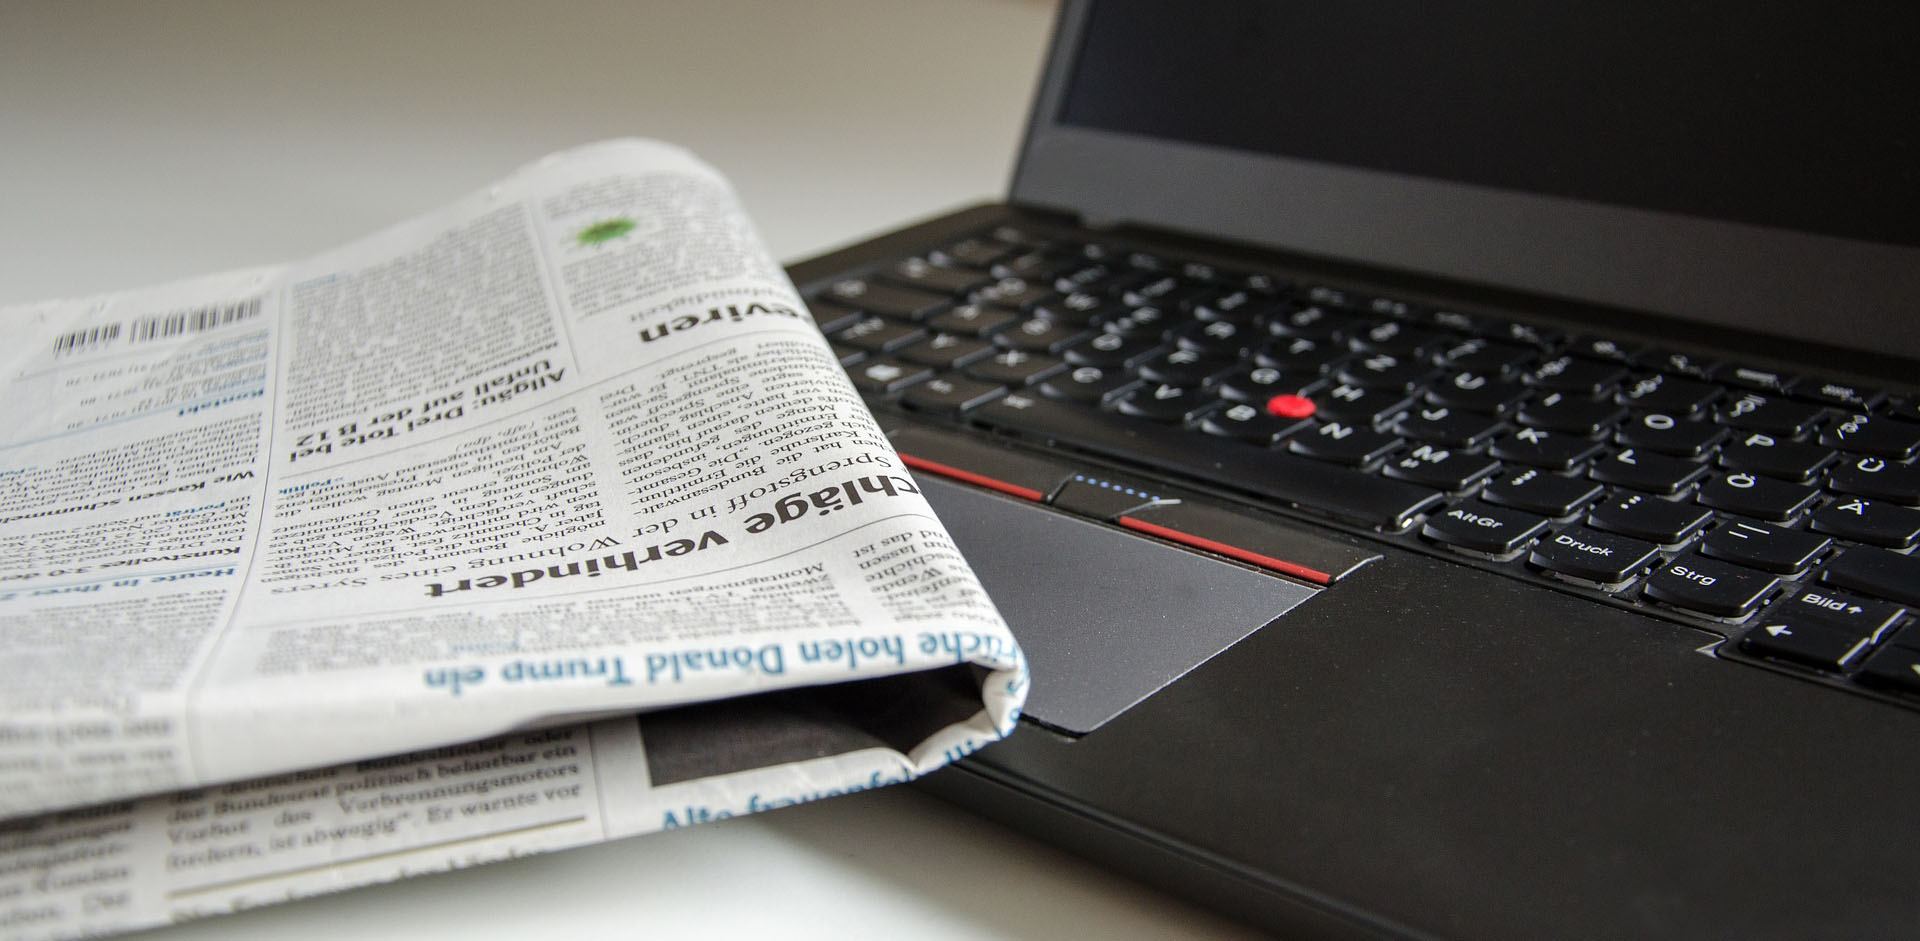 Newspaper sitting on a laptop